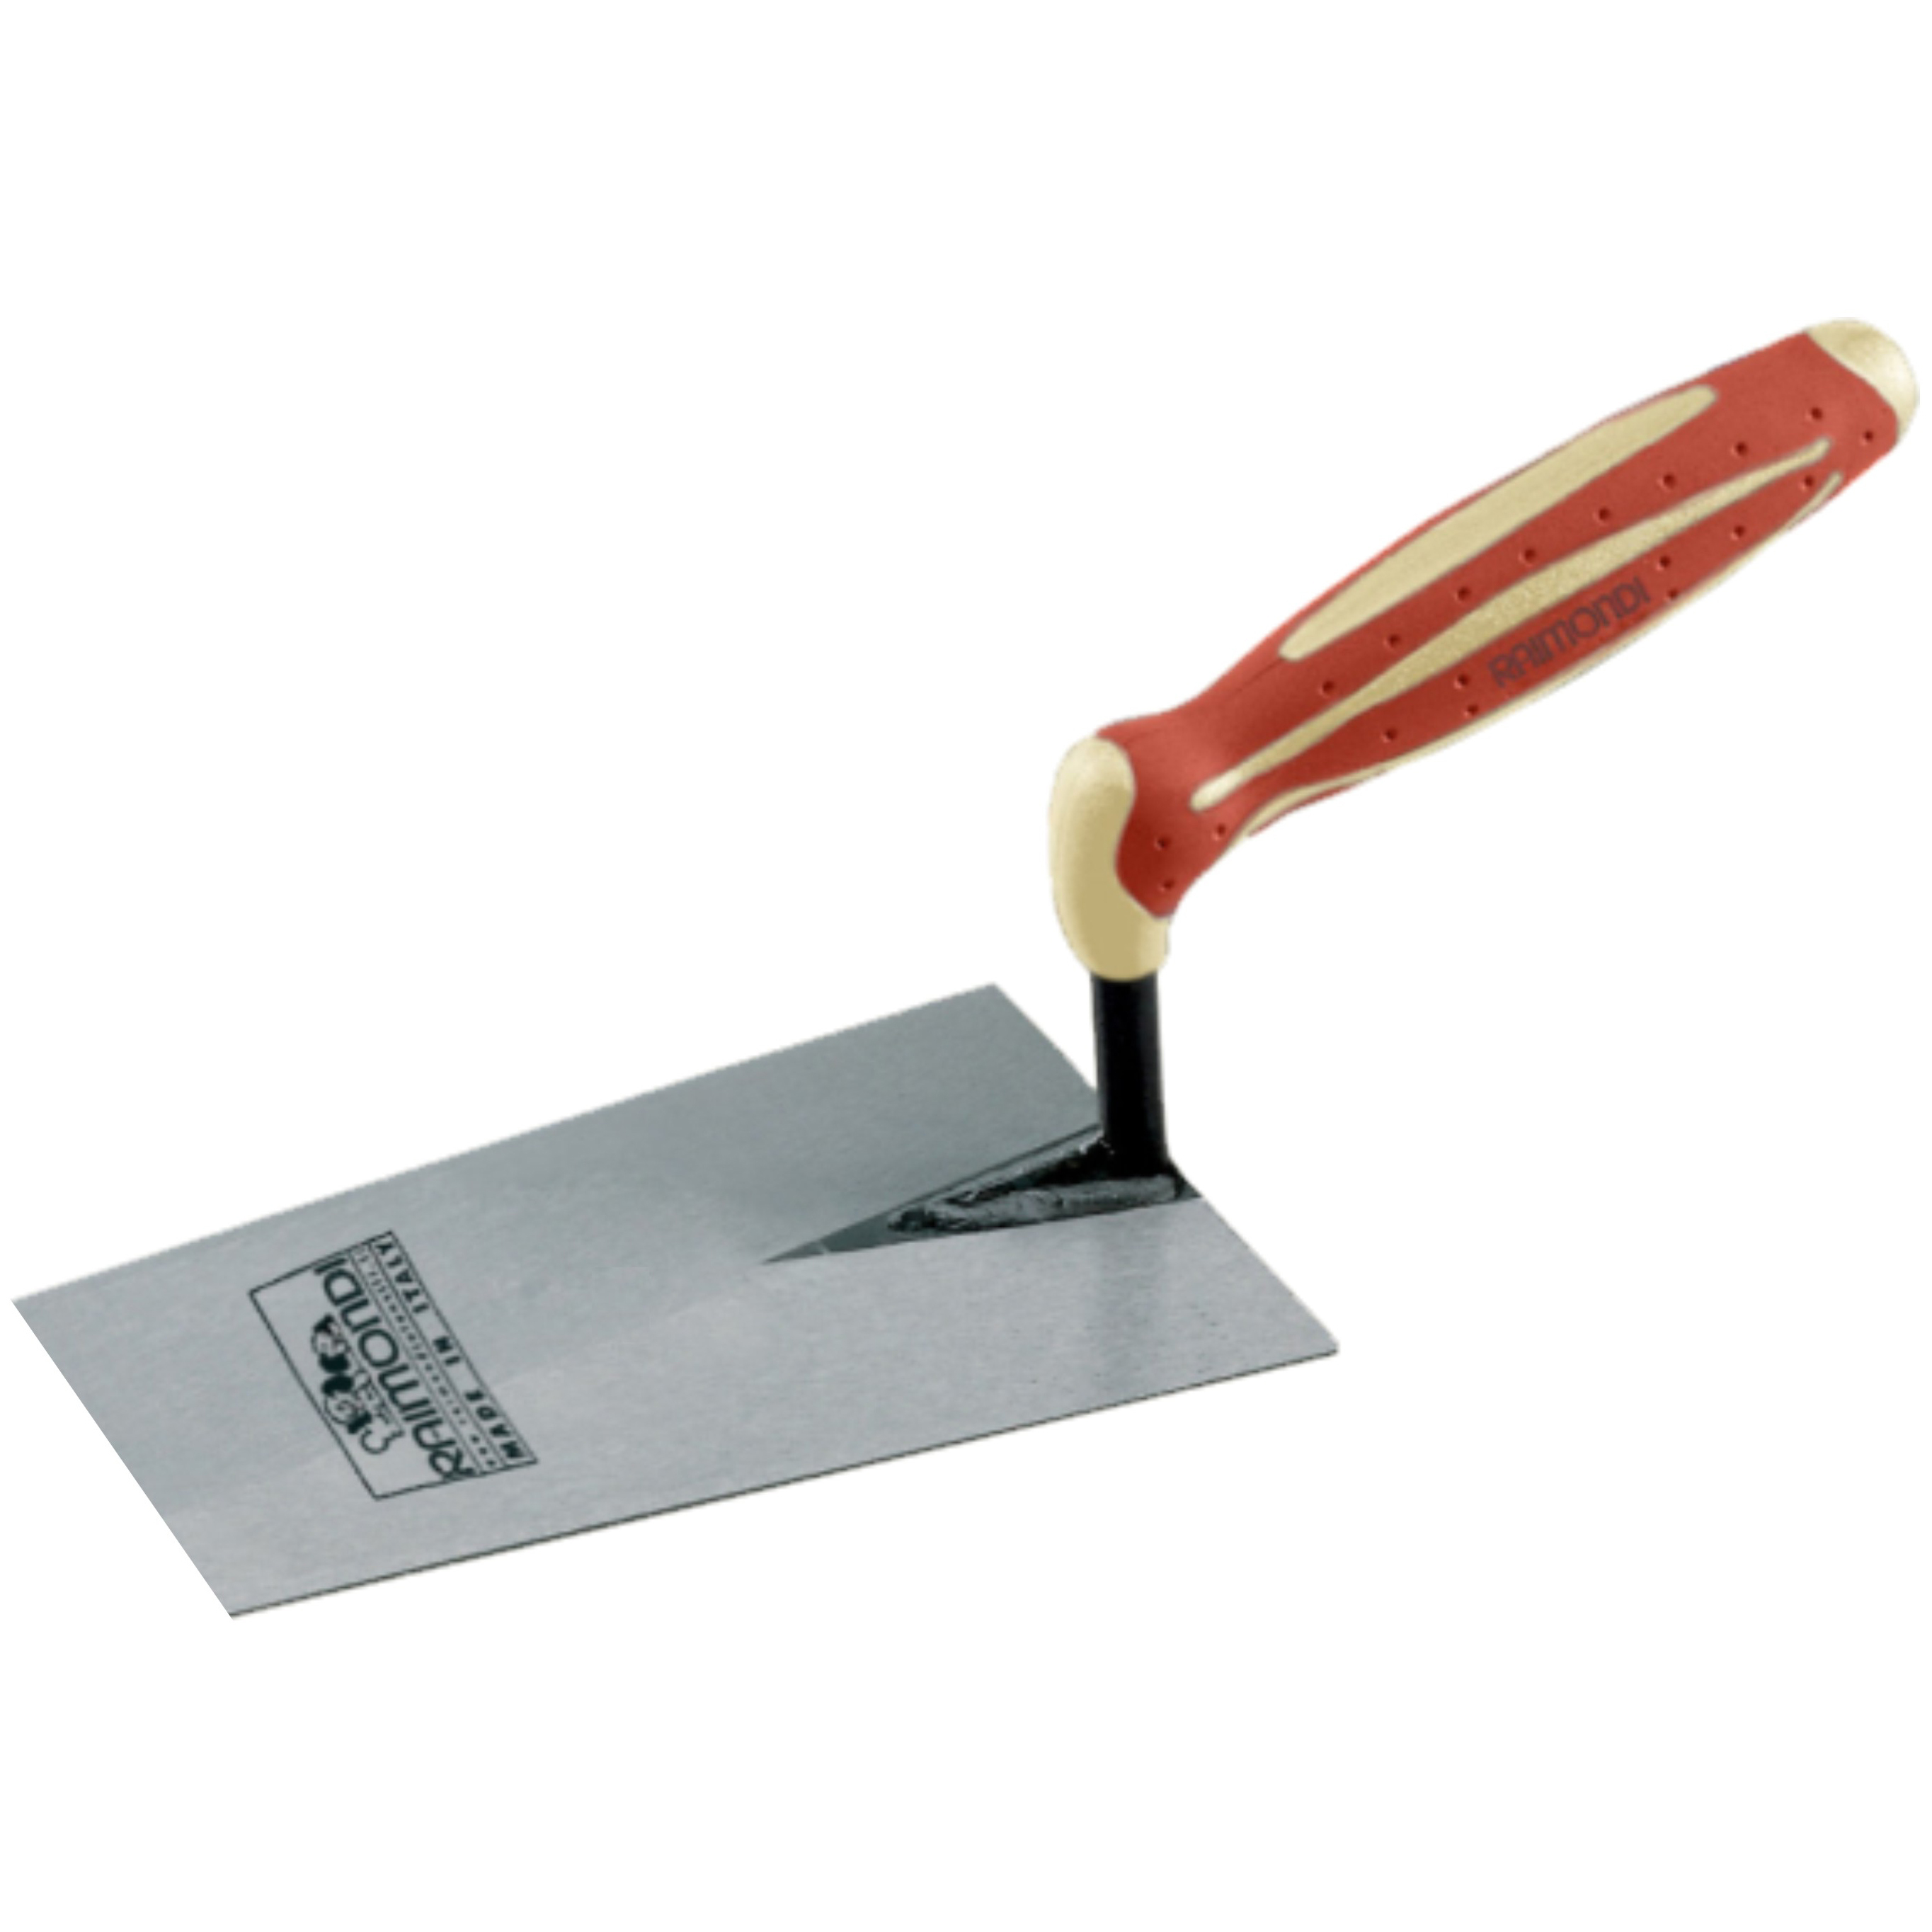 Trowels & Hand Tools